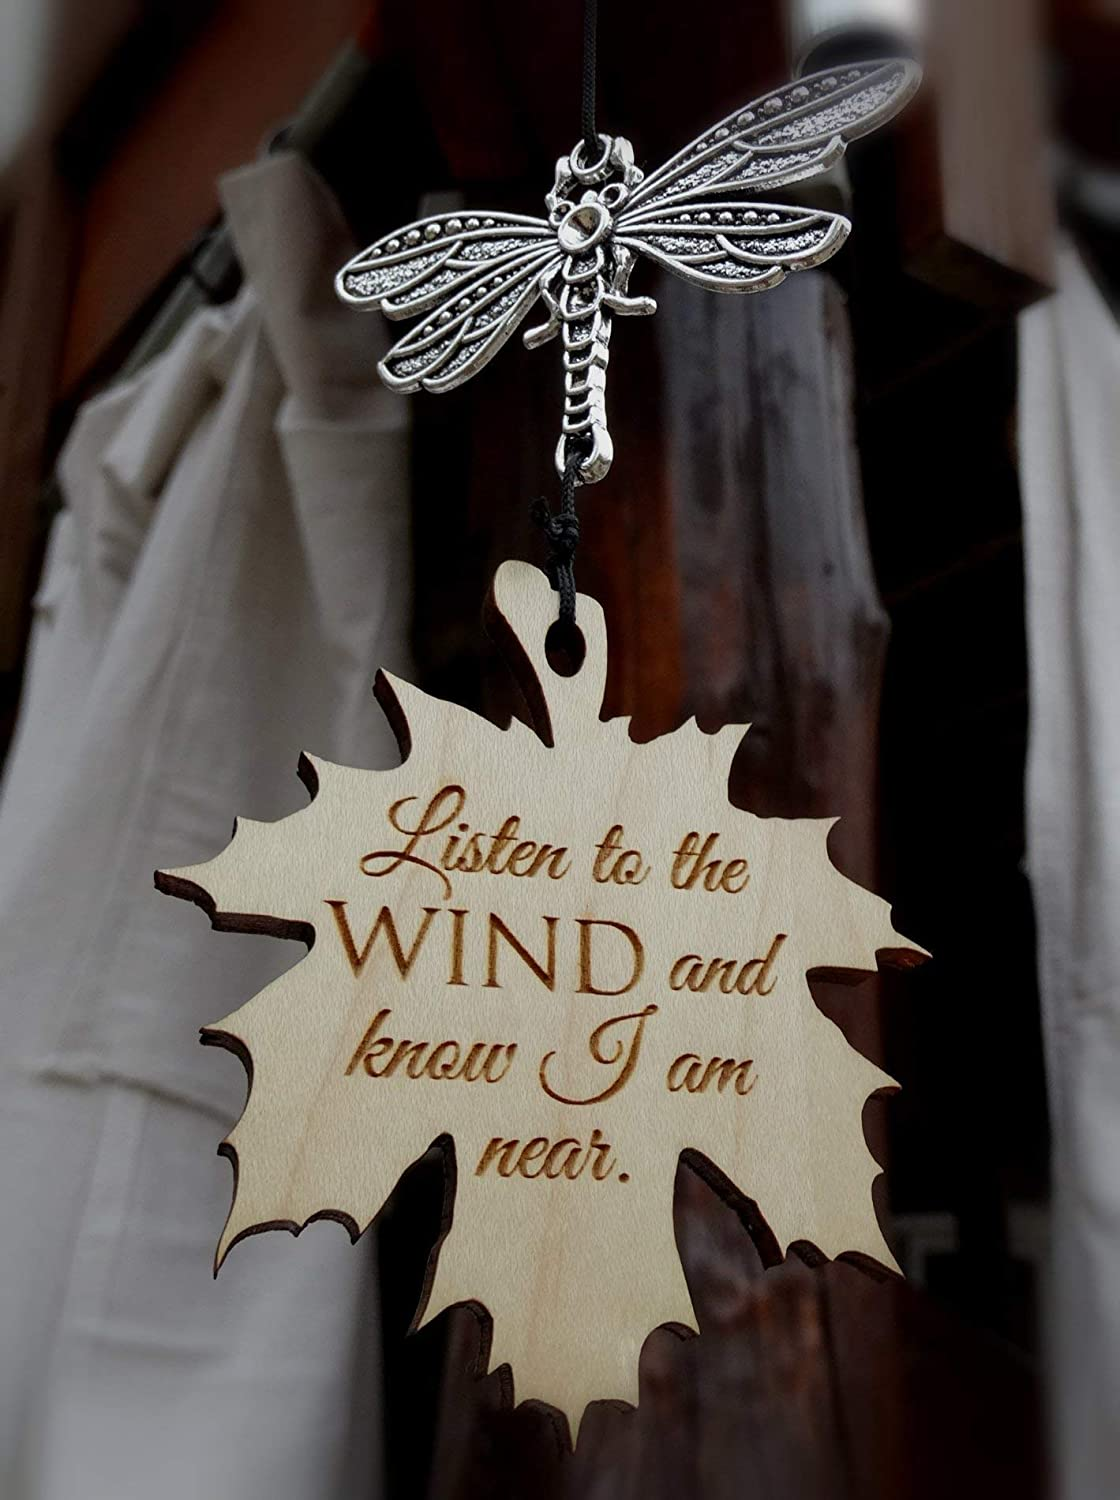 Dragonfly Memorial Wind Chime I am Near Leaf in memory of Loved One Silver Wind Chime for Memorial Garden or Porch Heaven day remembering stillborn baby miscarriage death